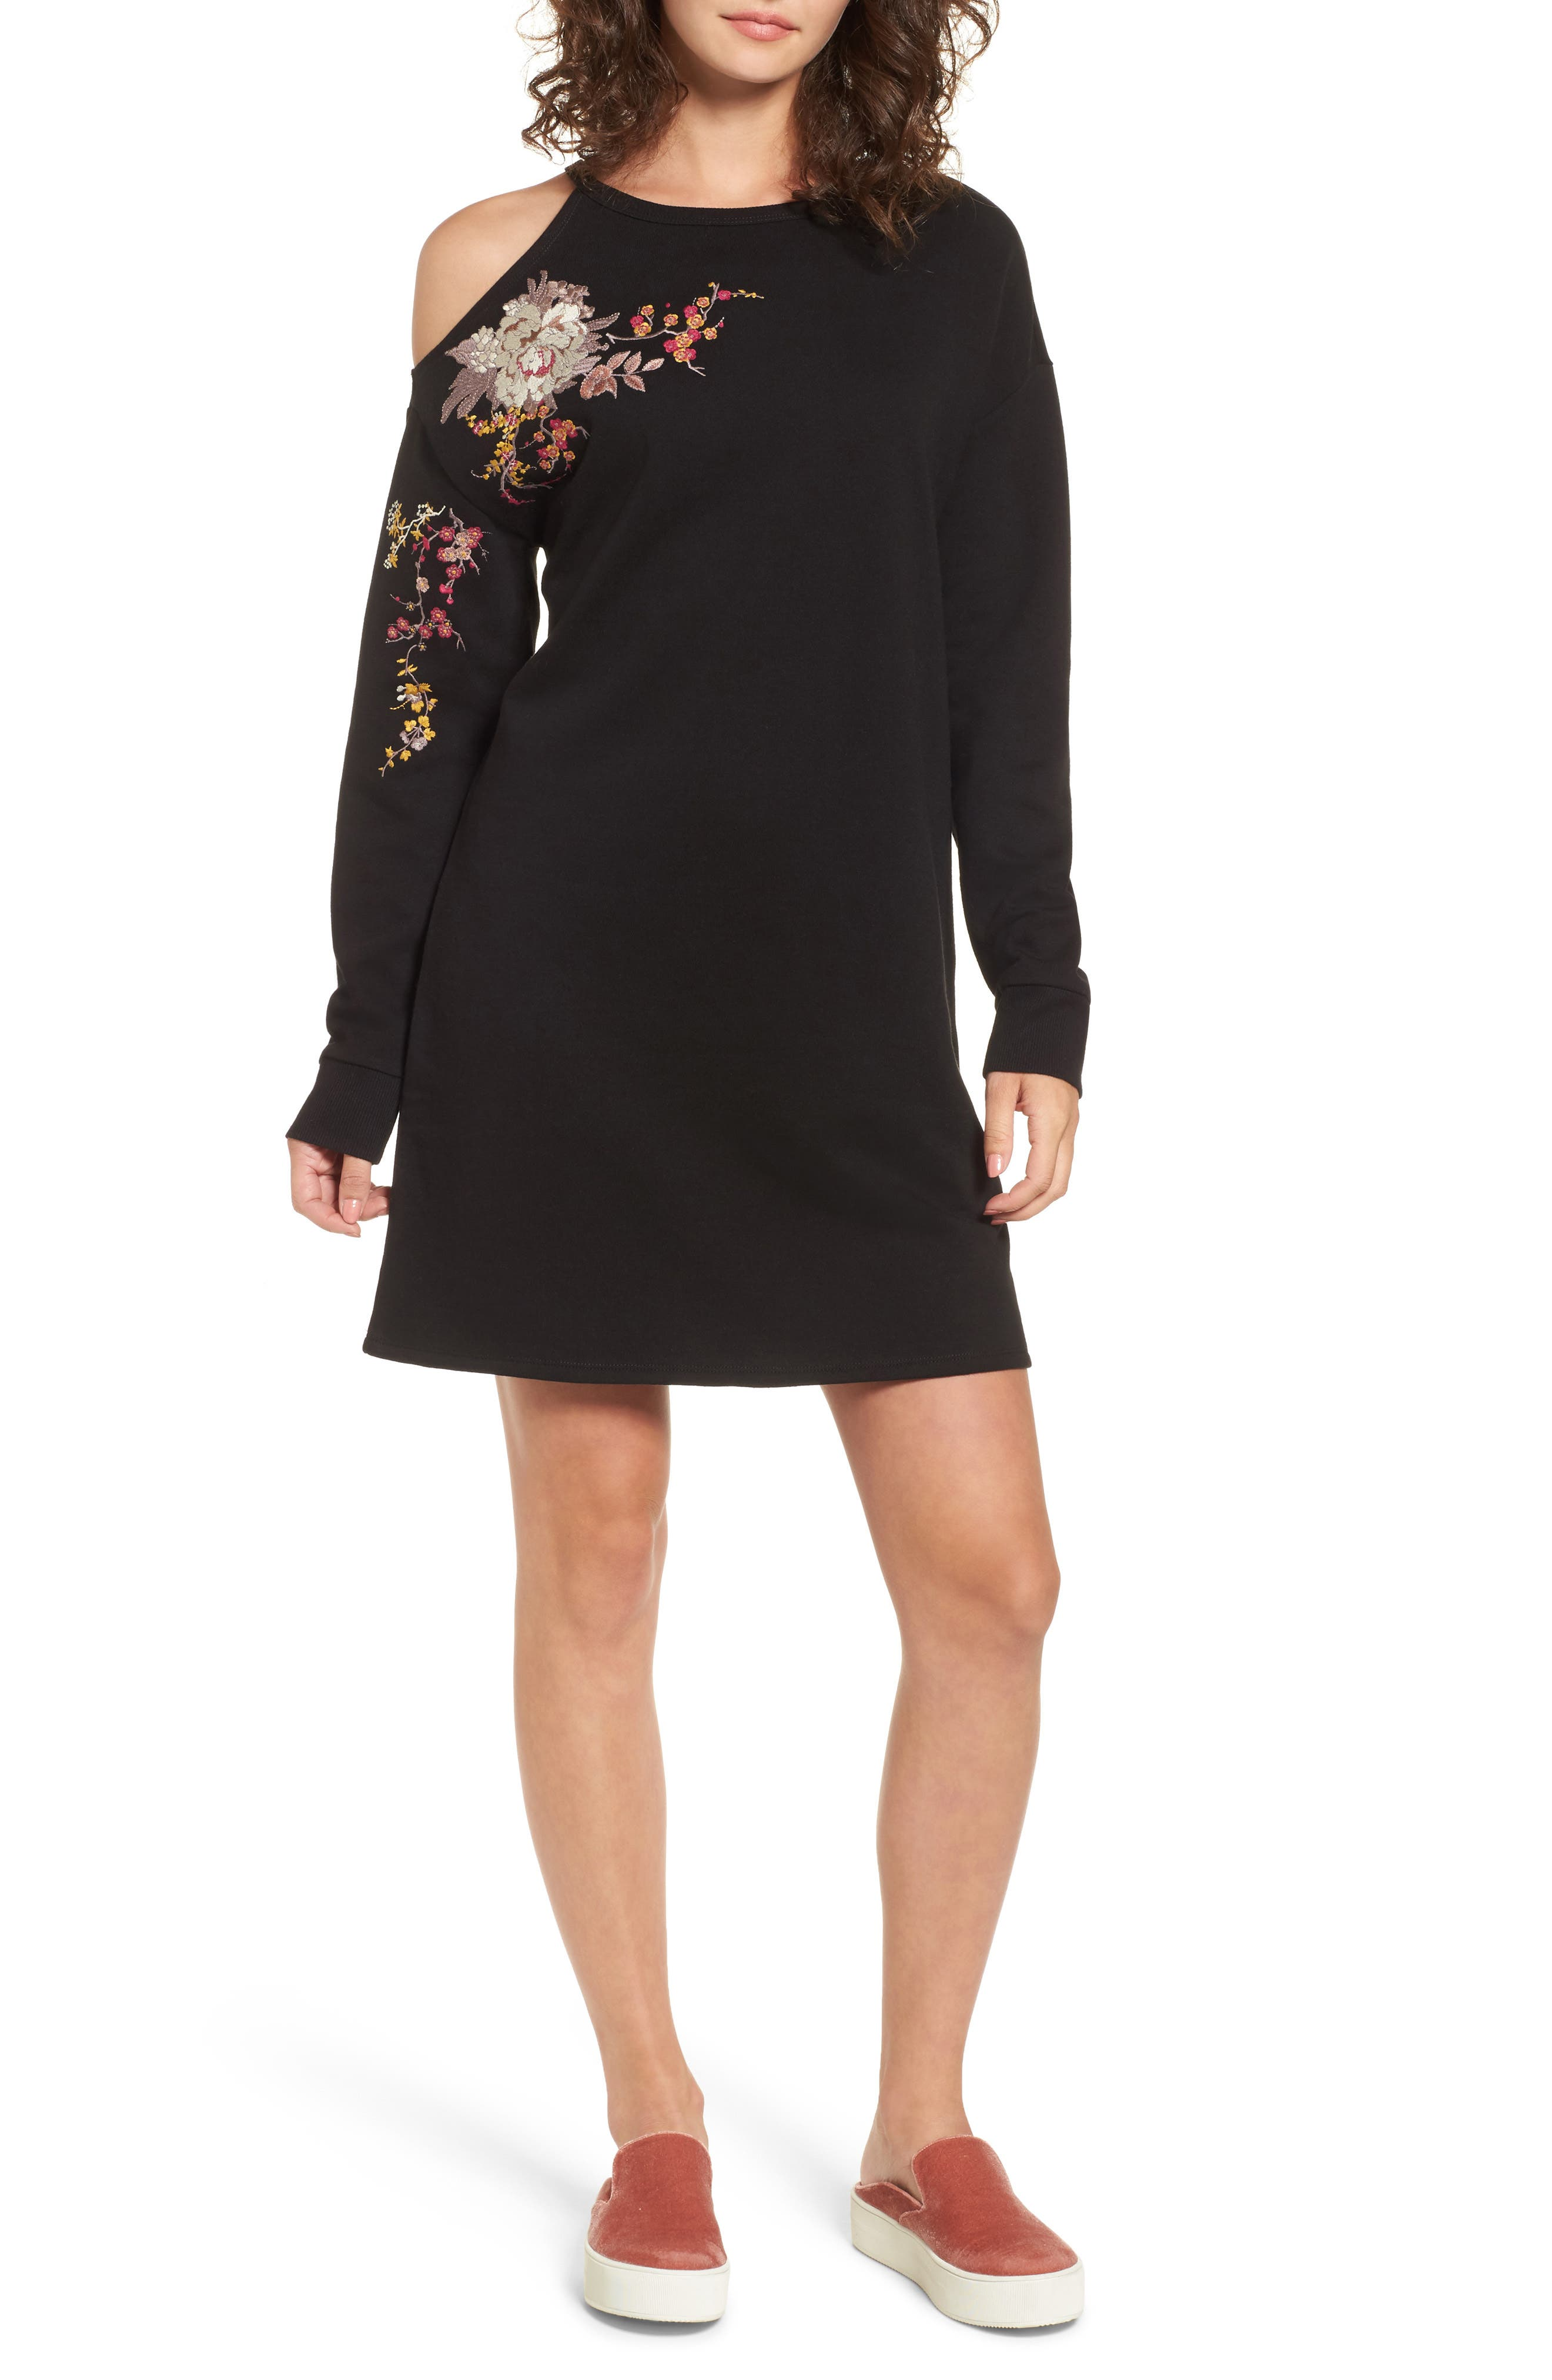 Socialite Embroidered Sweatshirt Dress